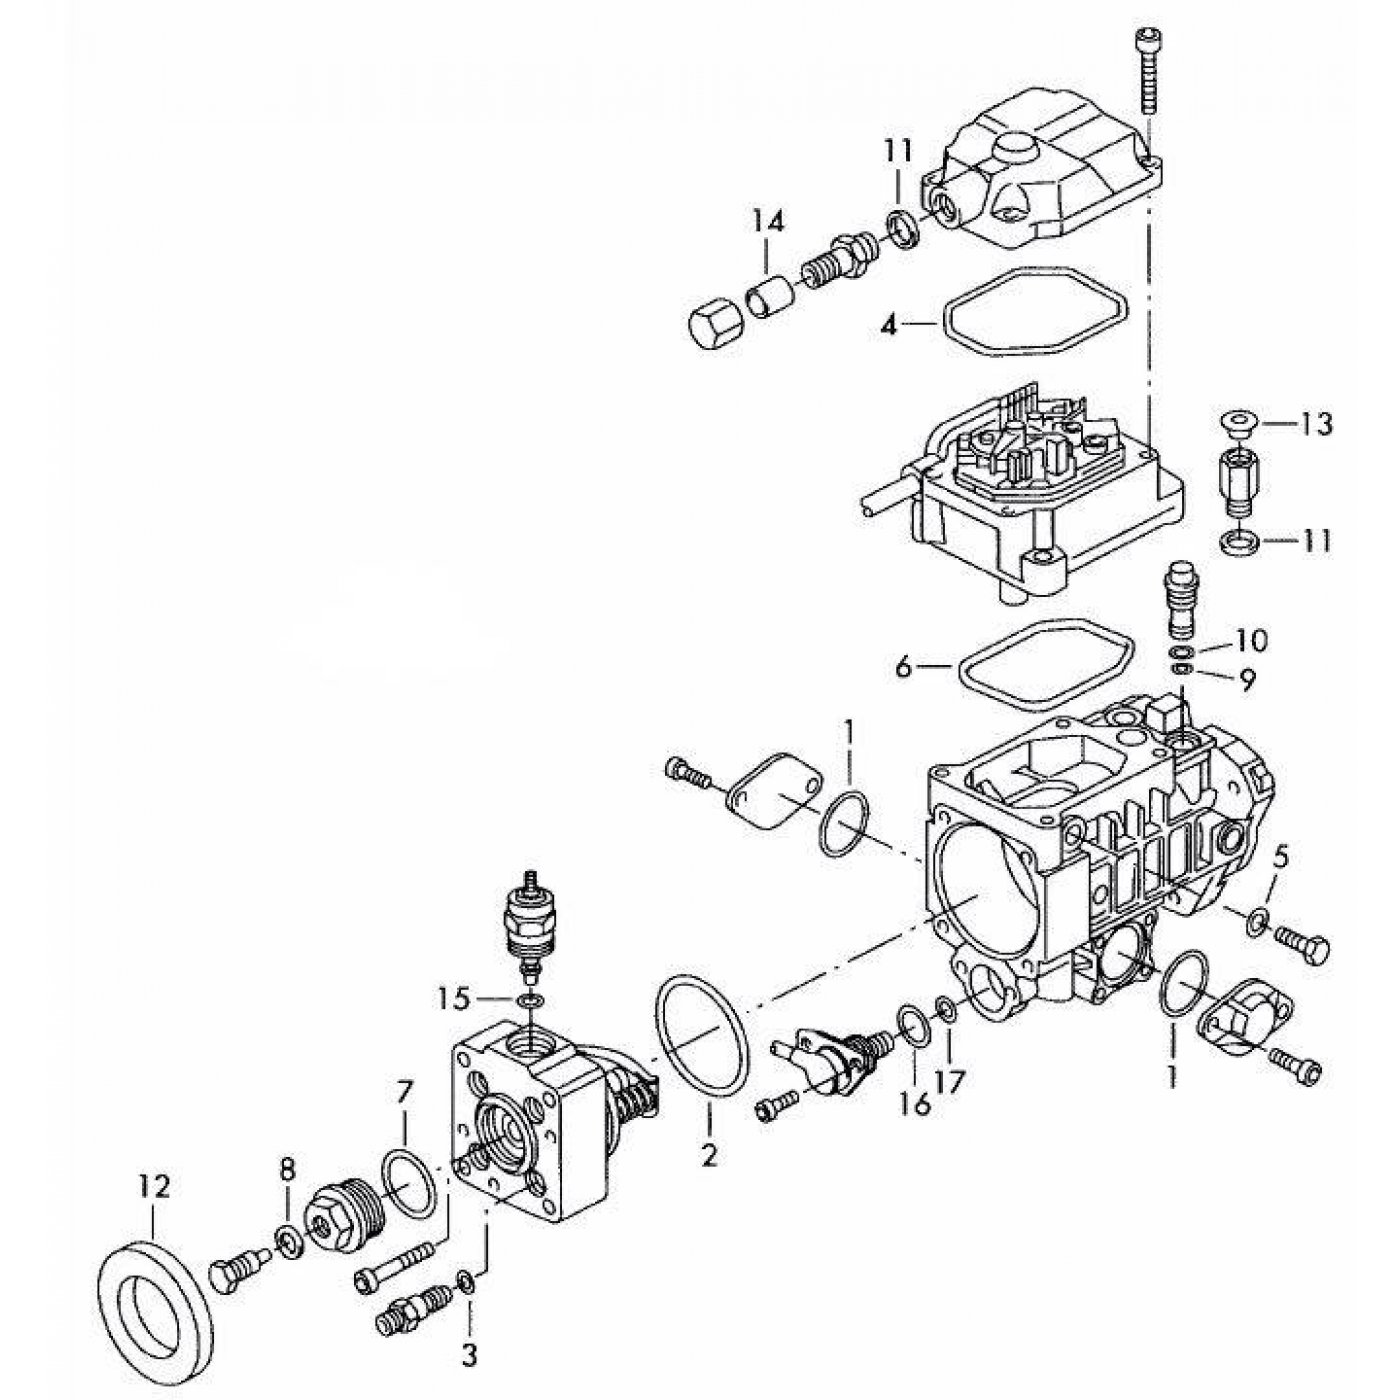 Bmw e46 vacuum system pipe wiring diagram and fuse box